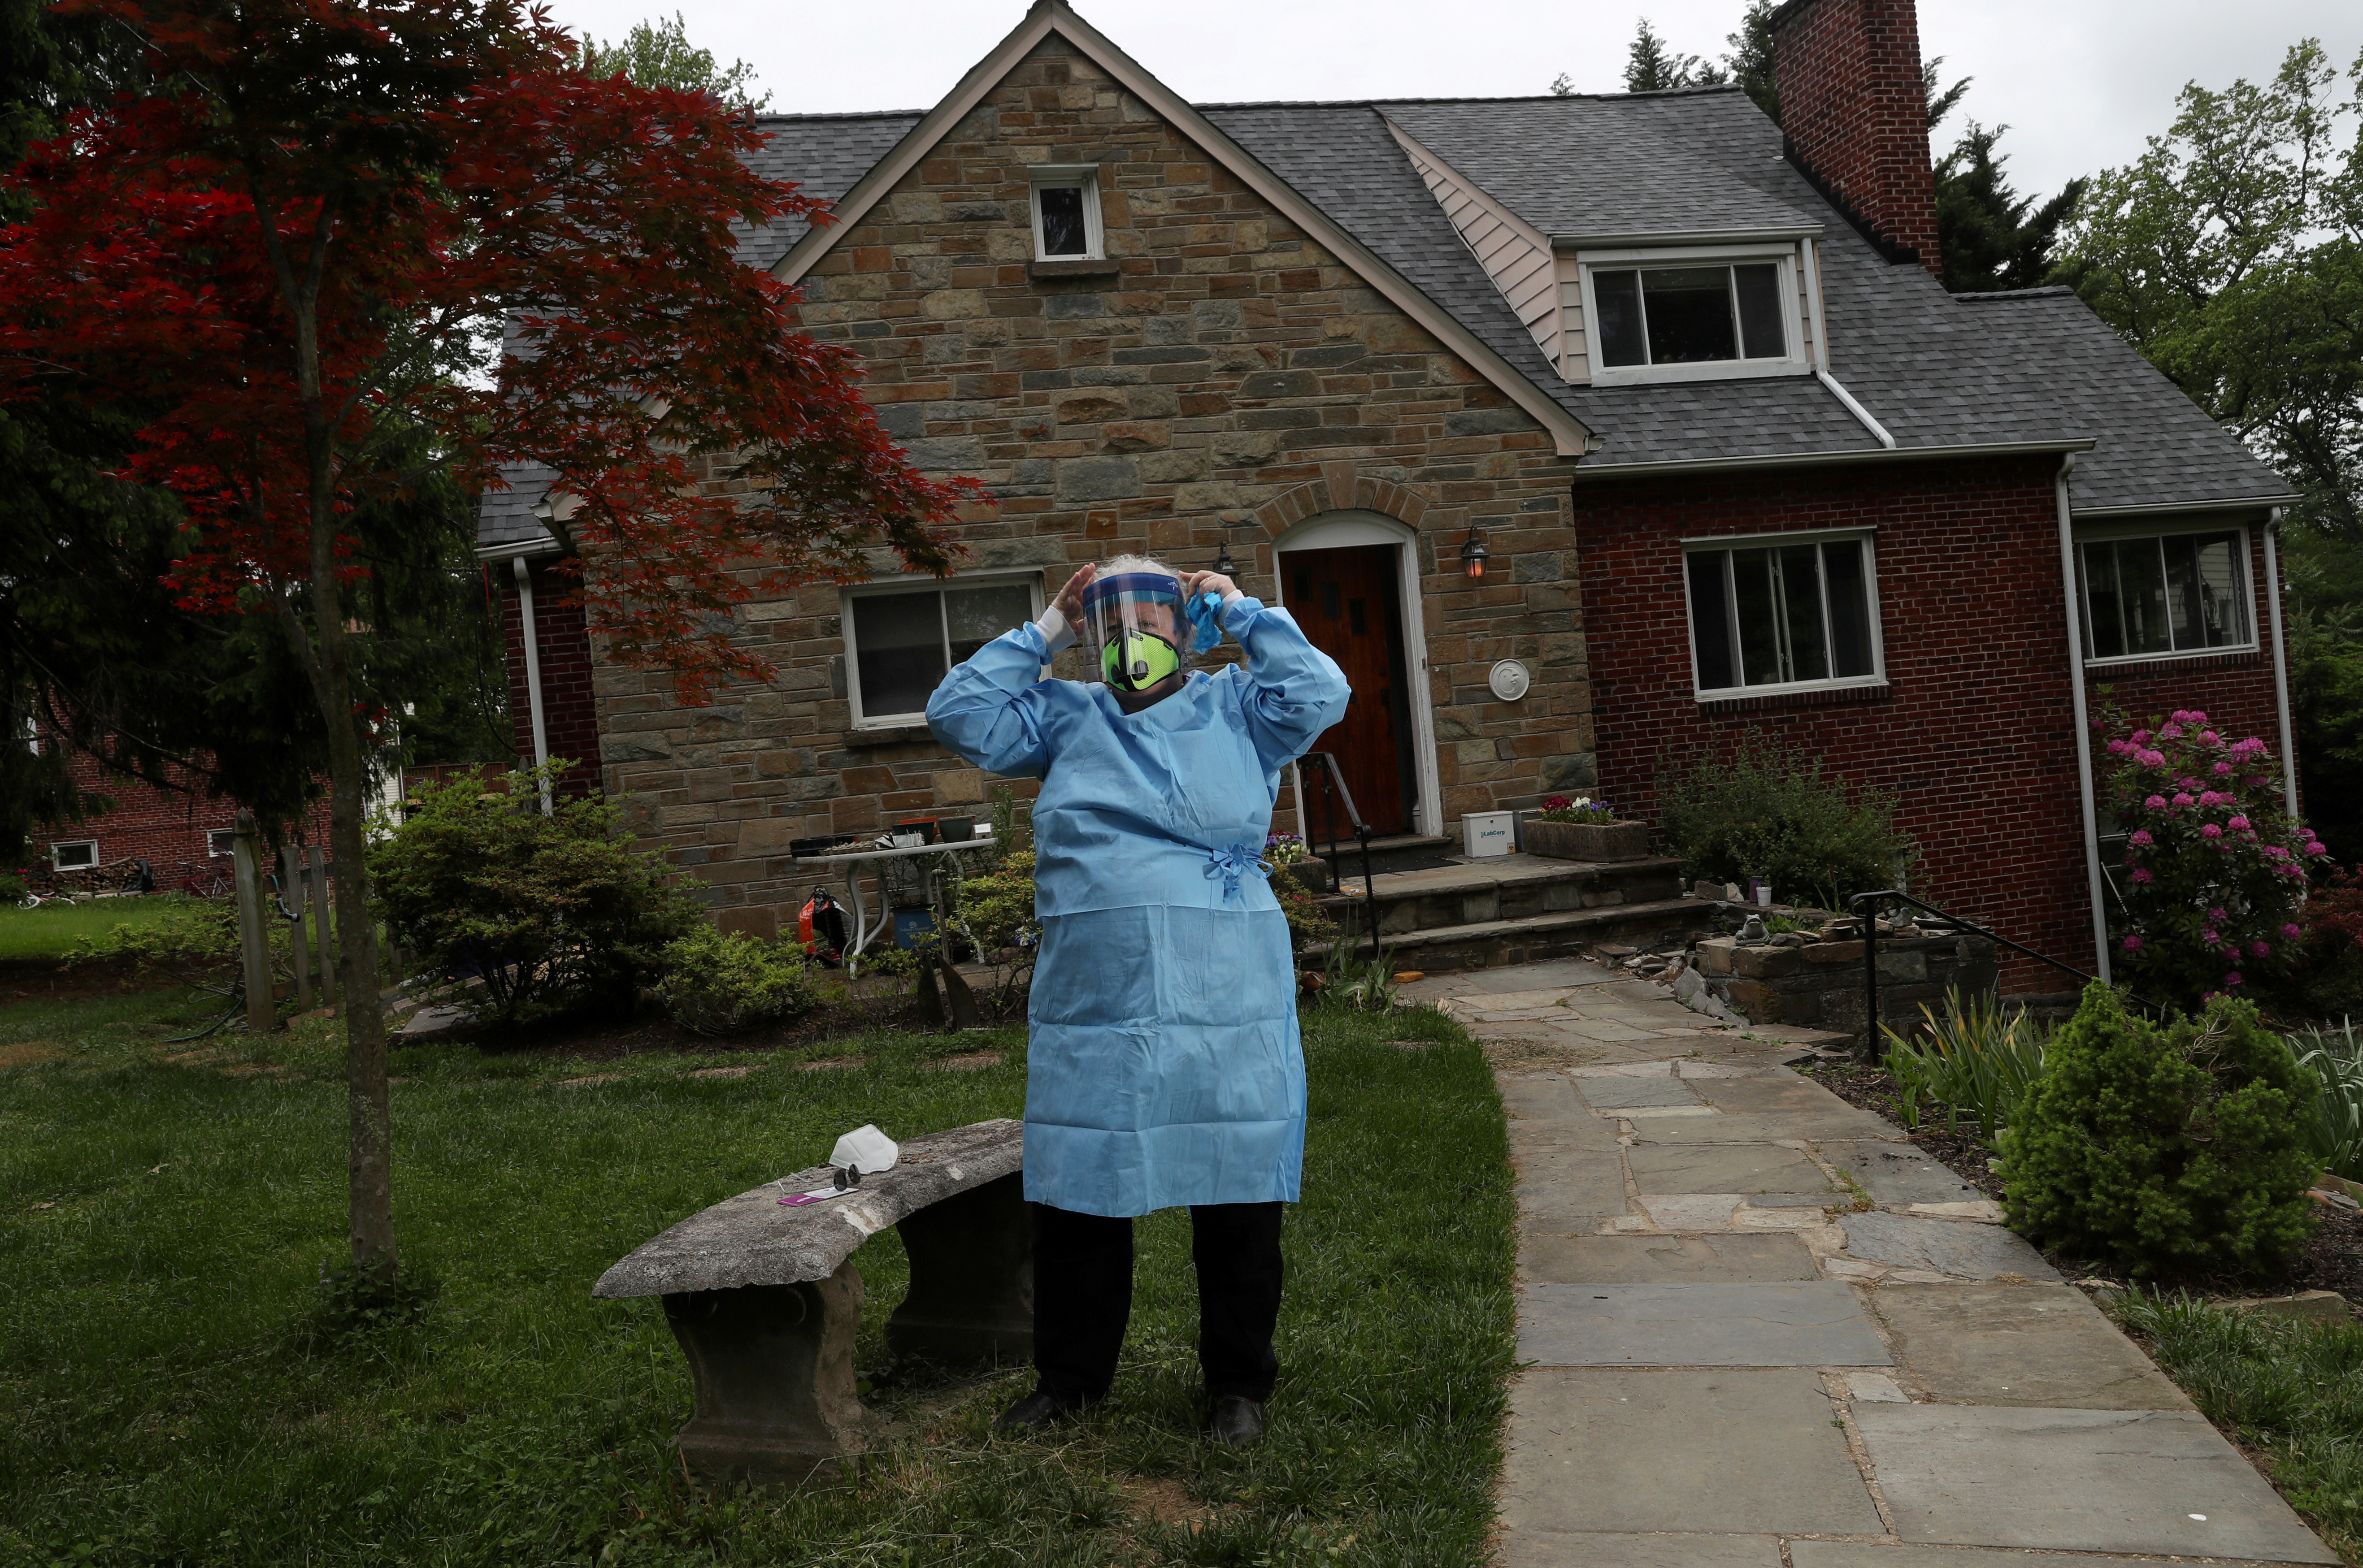 Mairi Breen Rothman, CNM, DM. Certified Nurse-Midwife. Director, M.A.M.A.S., Inc. poses for a portrait in Takoma Park, U.S., May 17, 2020. Picture taken May 17, 2020. REUTERS/Leah Millis - RC2P3J91P8UA